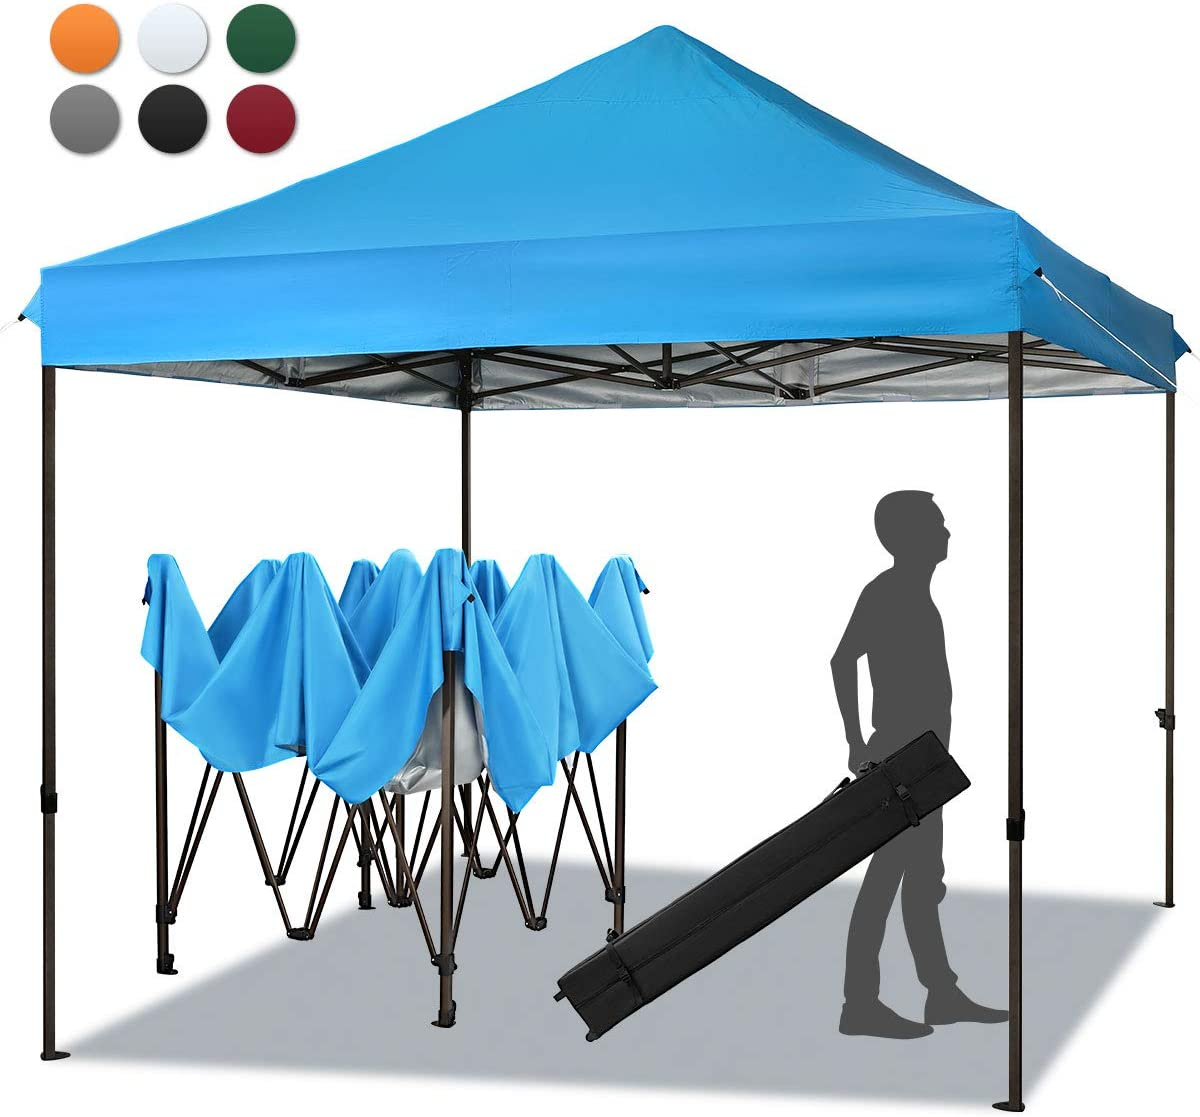 MEWAY 10ft Patio Awning Garden Shade Commercial Ez Pop Up Canopy Tent Instant Canopy Party Tent Sun Shelter